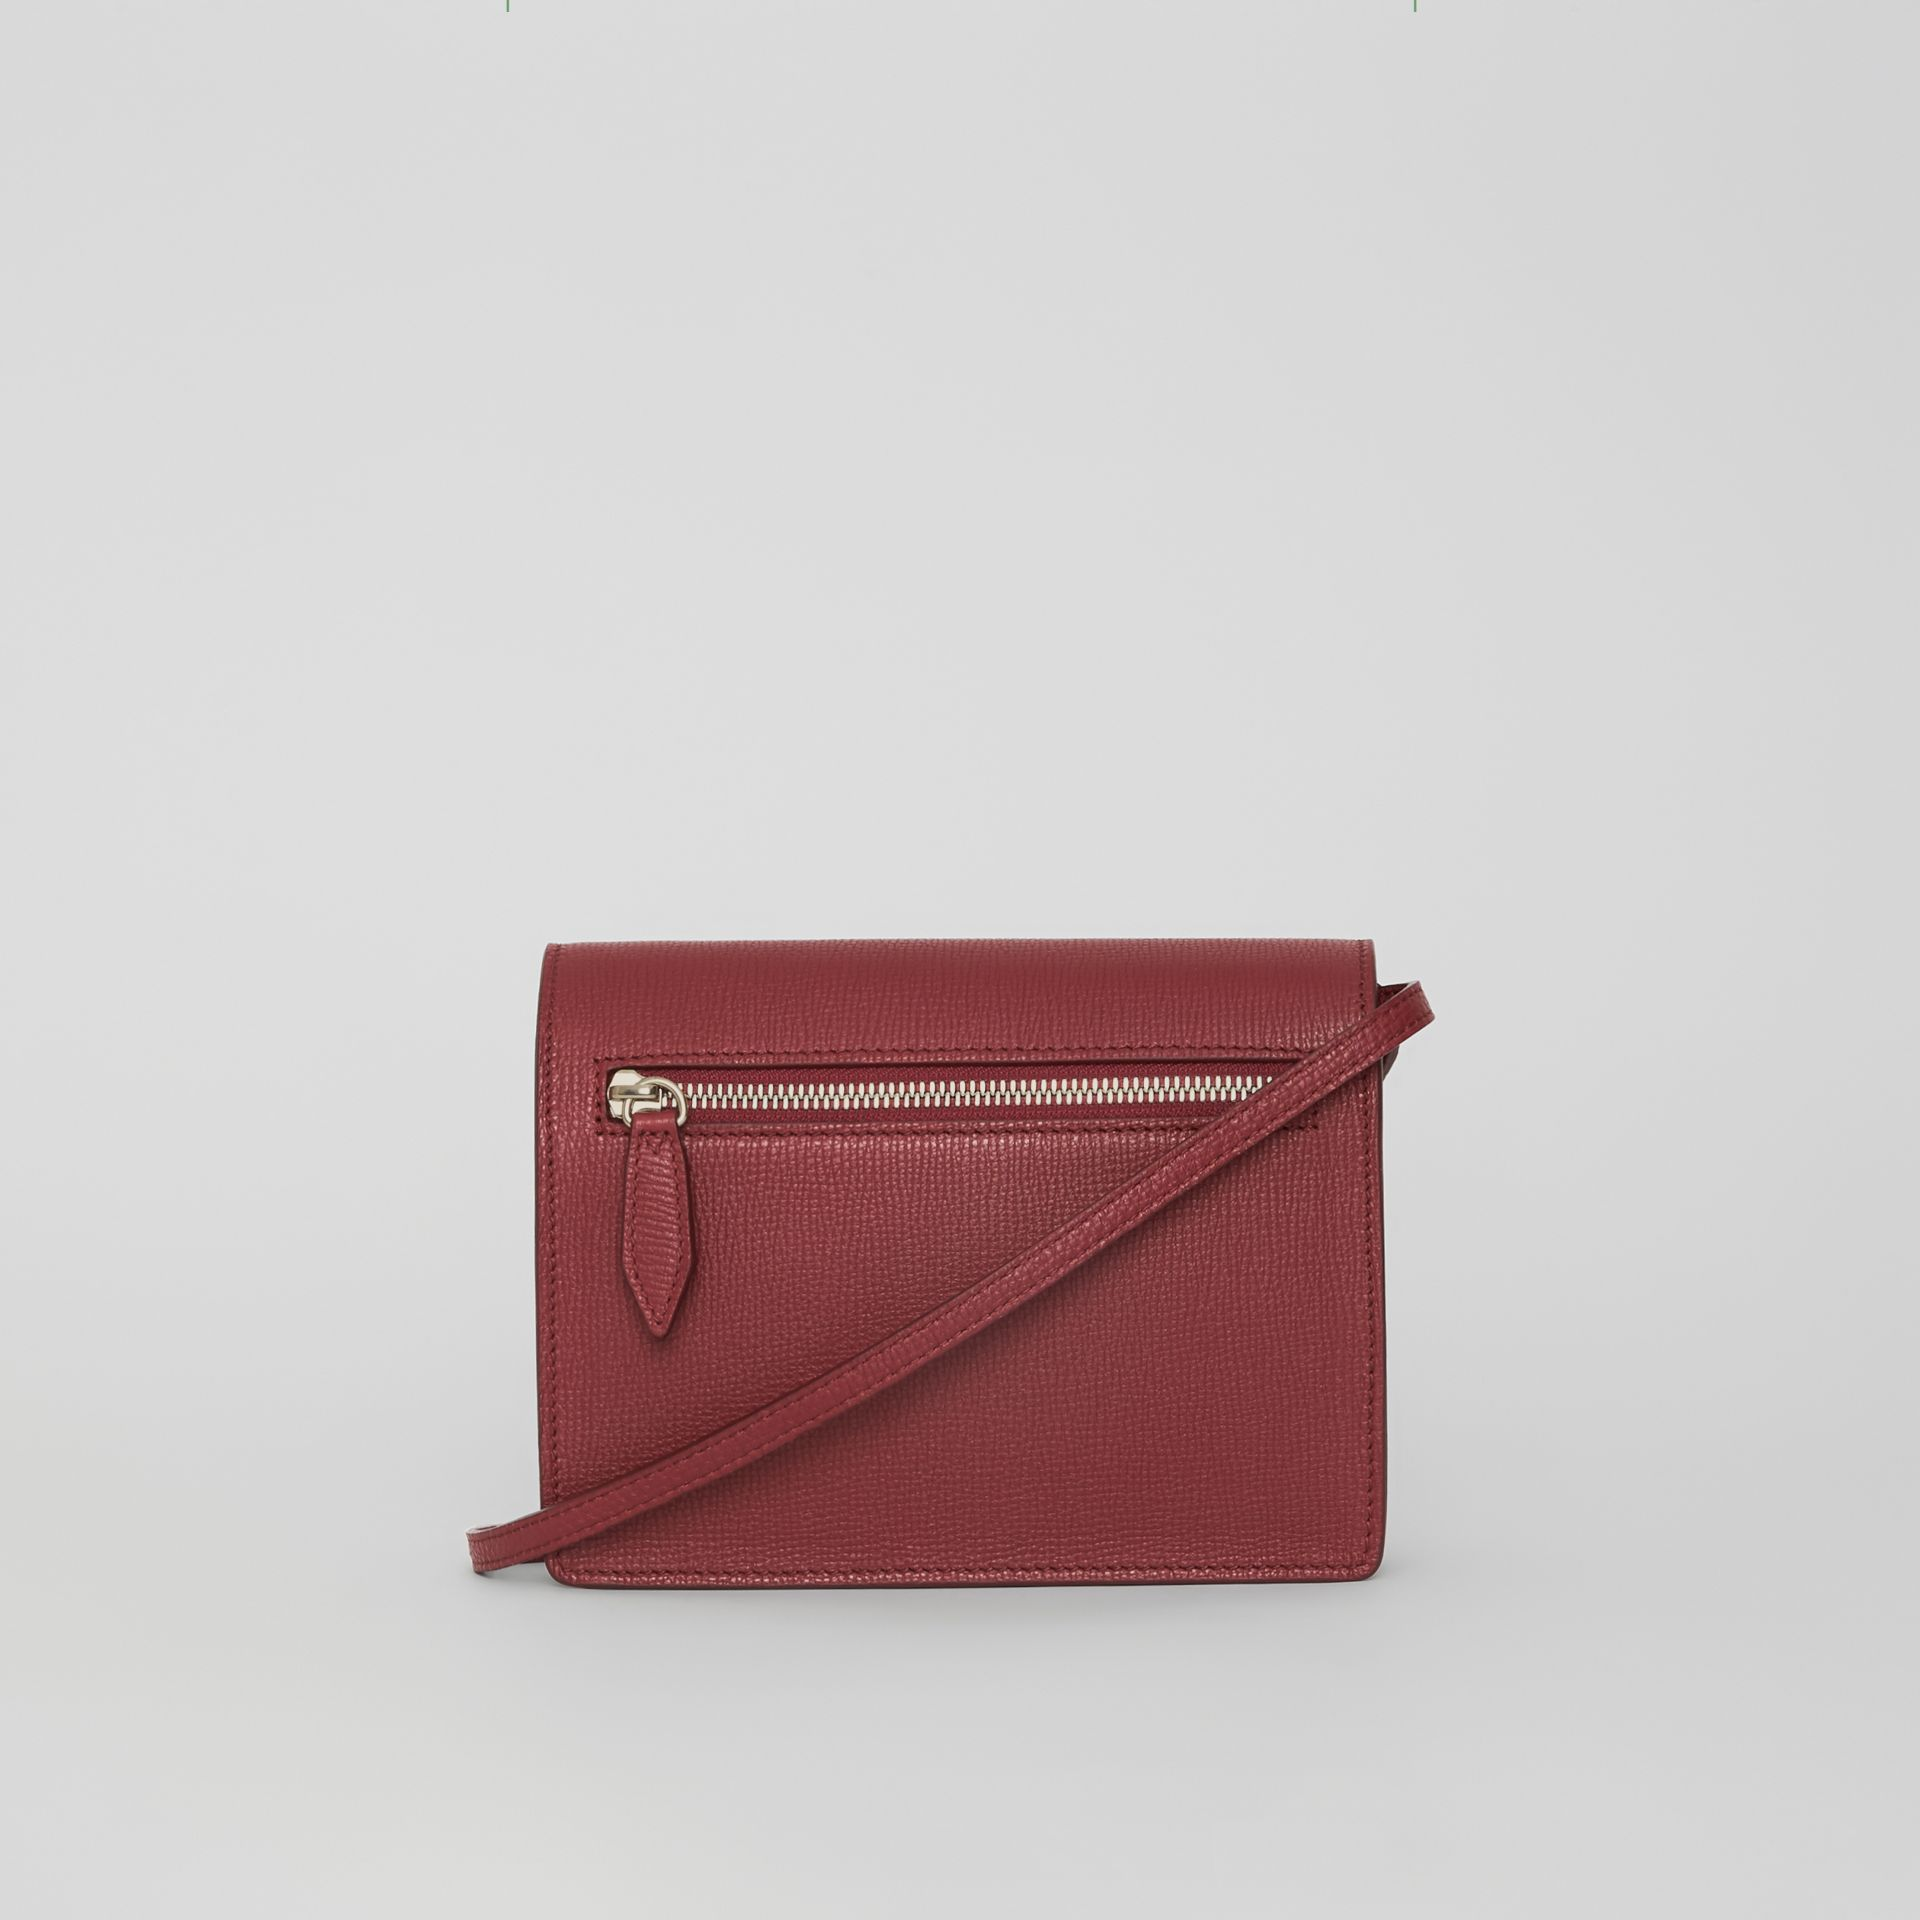 Mini Leather and Vintage Check Crossbody Bag in Crimson - Women | Burberry Hong Kong S.A.R - gallery image 6